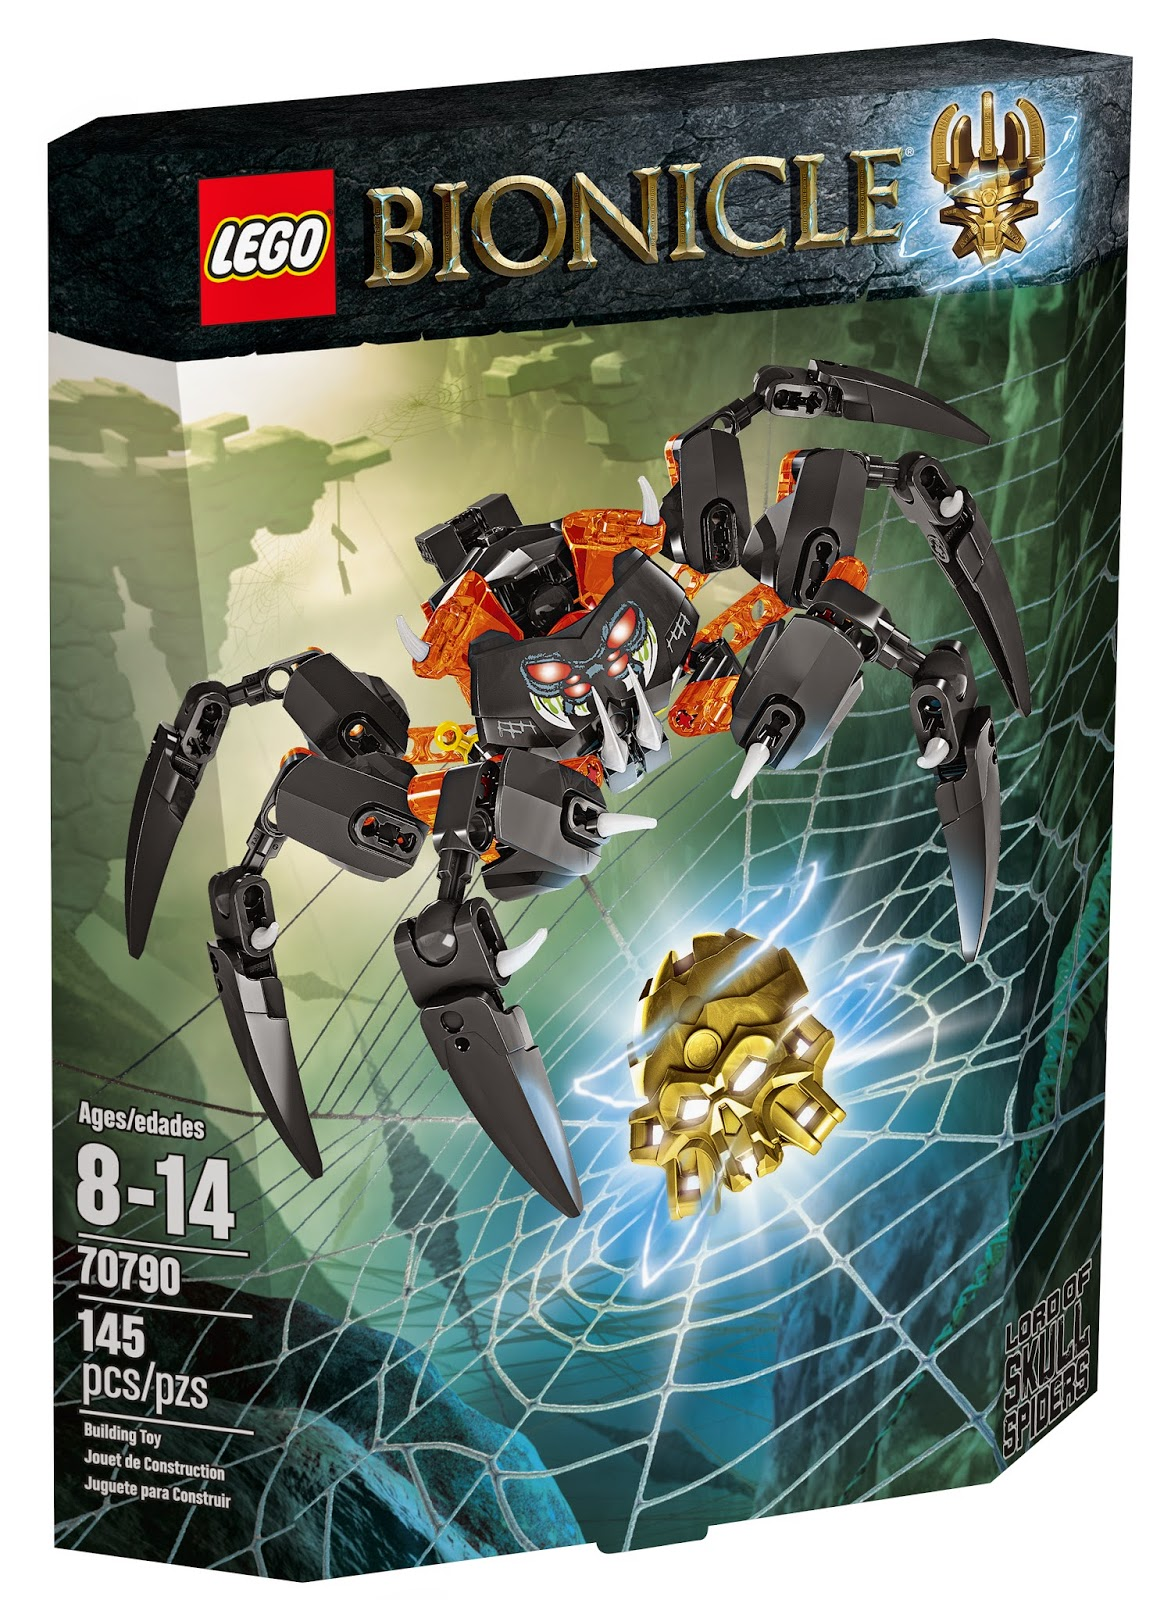 New Bionicle LEGO set 70790 Lord Of Skull Spiders